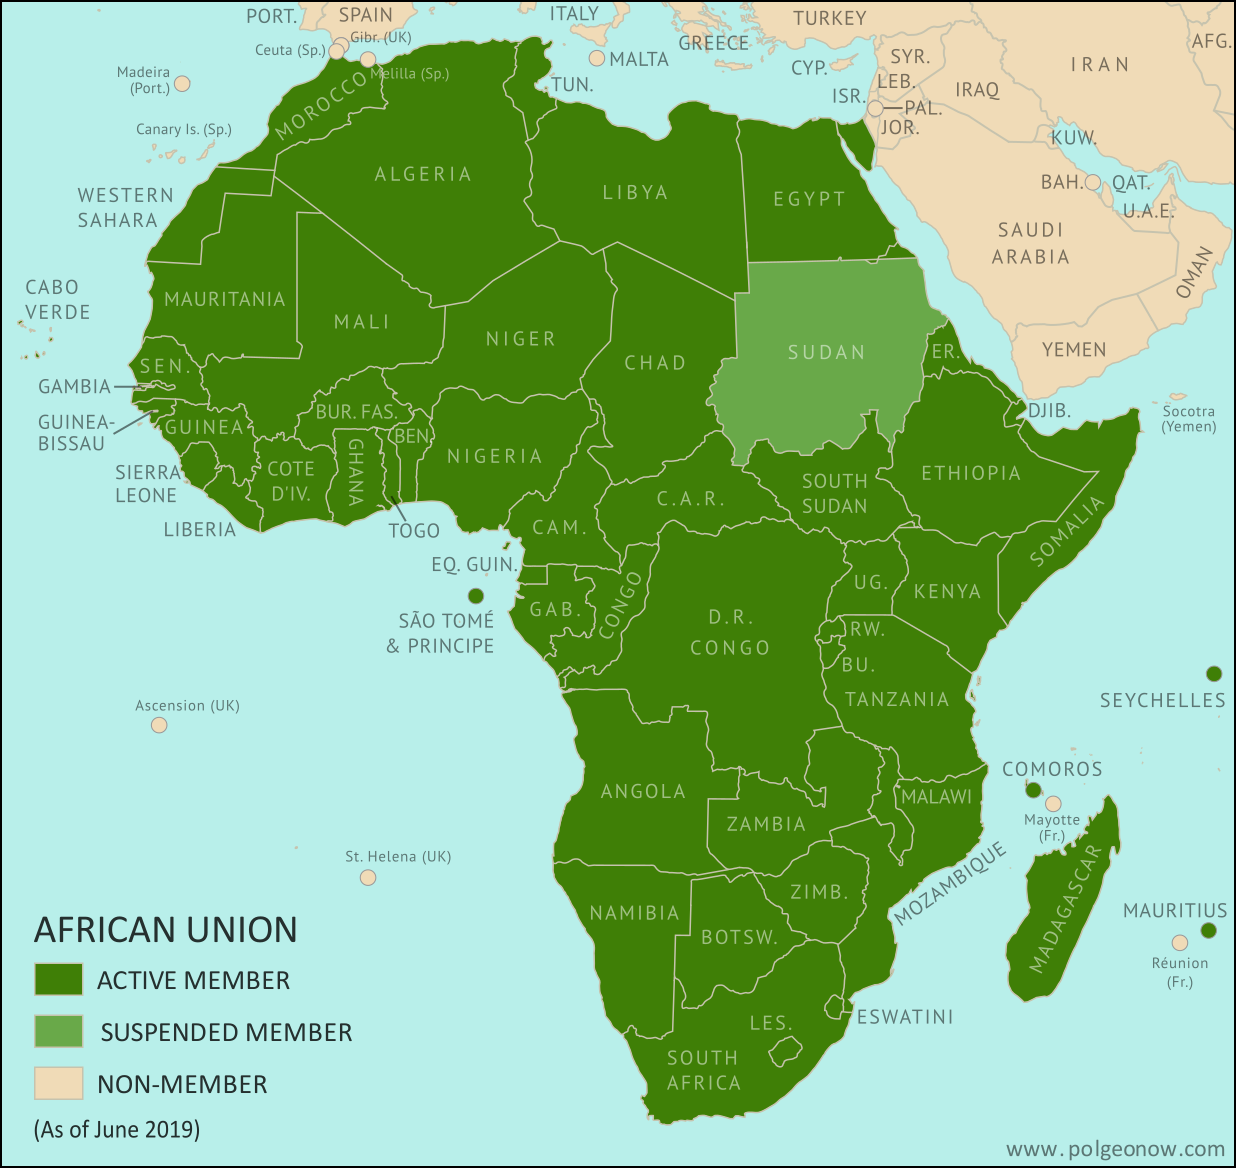 African Union: Map of Africa showing which countries are in the African Union, including active and suspended member countries and non-member territories. Updated for the June 2019 suspension of Sudan (colorblind accessible).